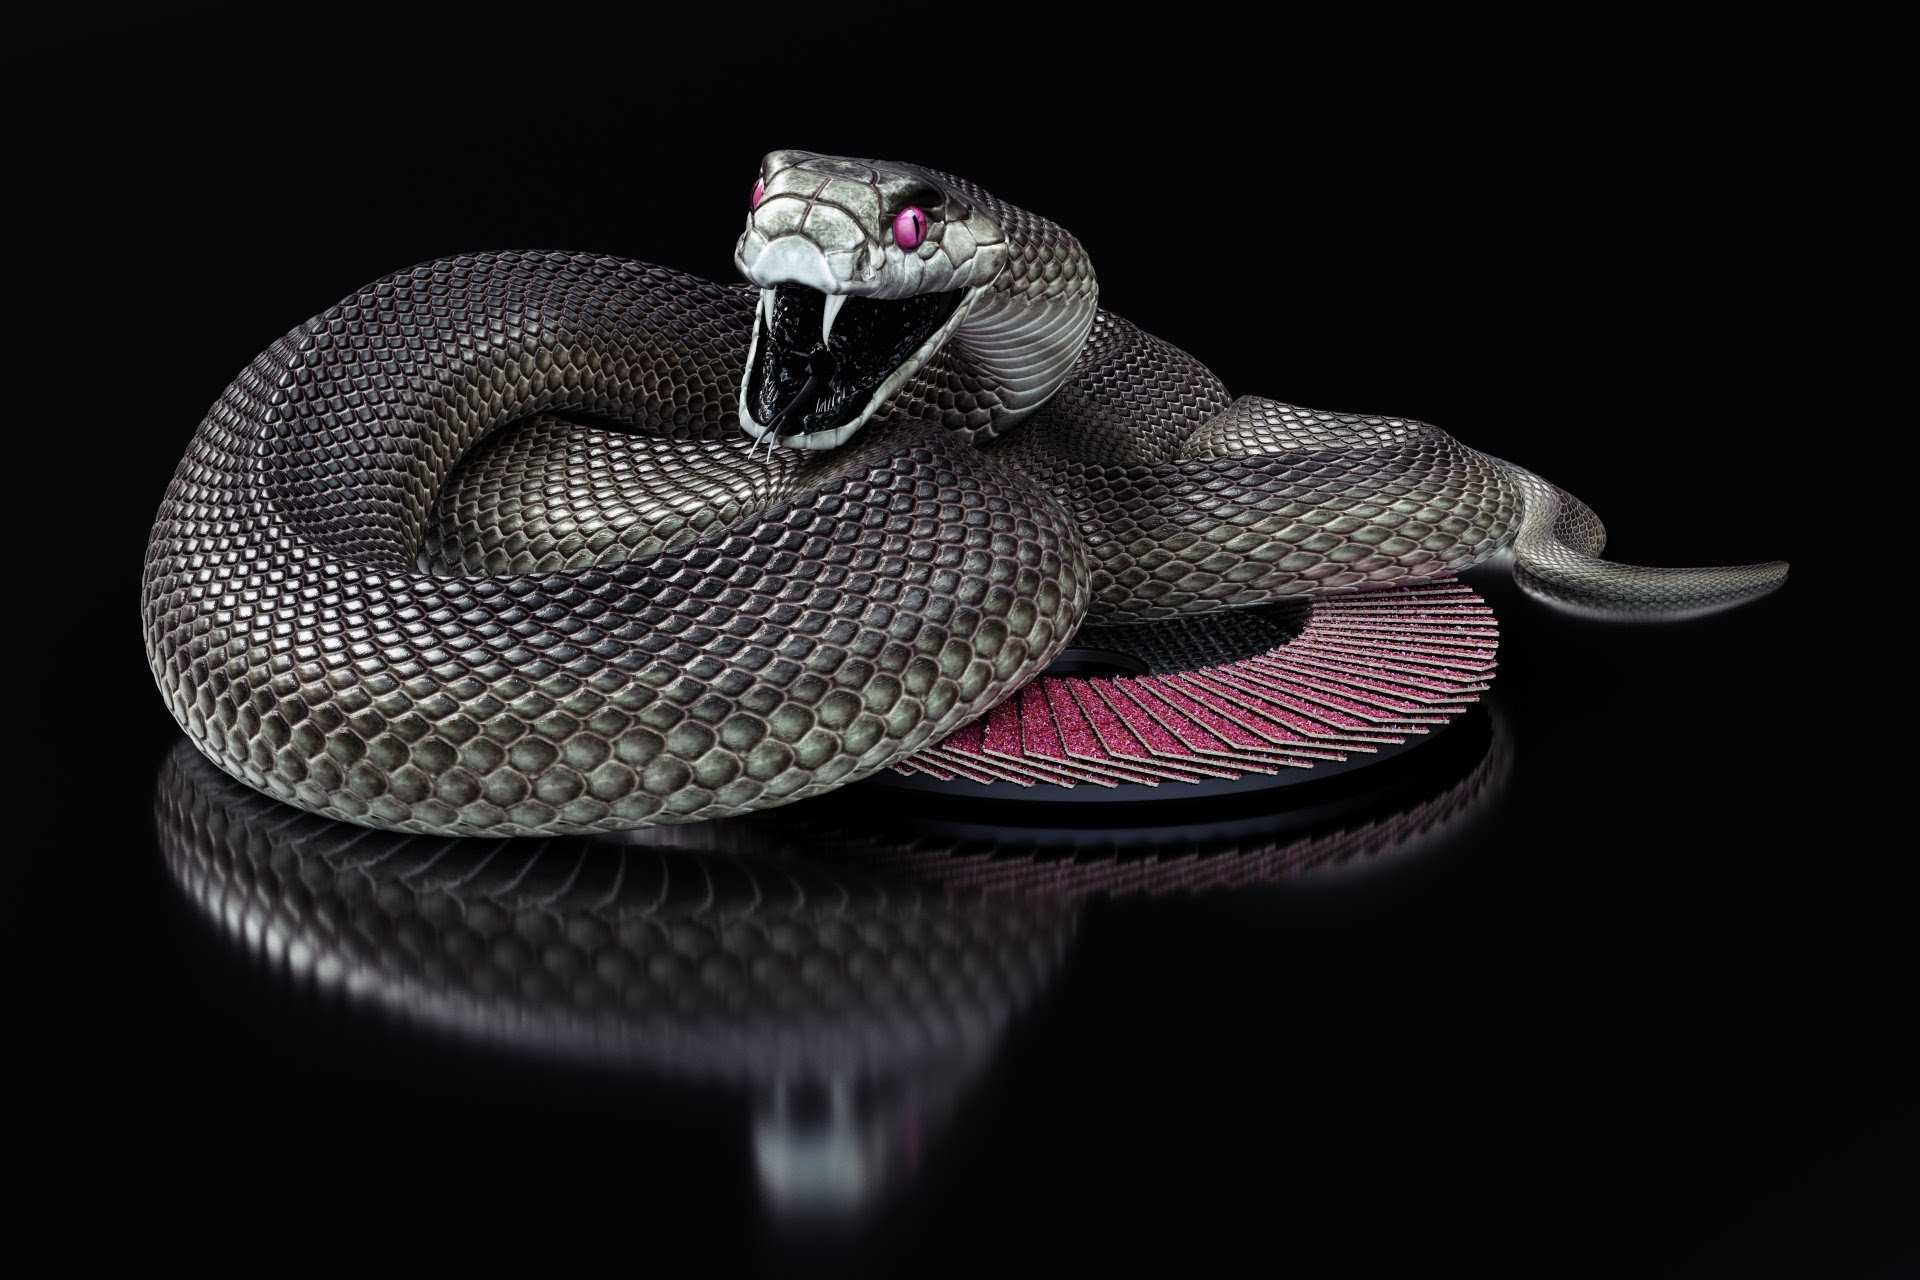 undefined Black Snake Wallpapers (43 Wallpapers